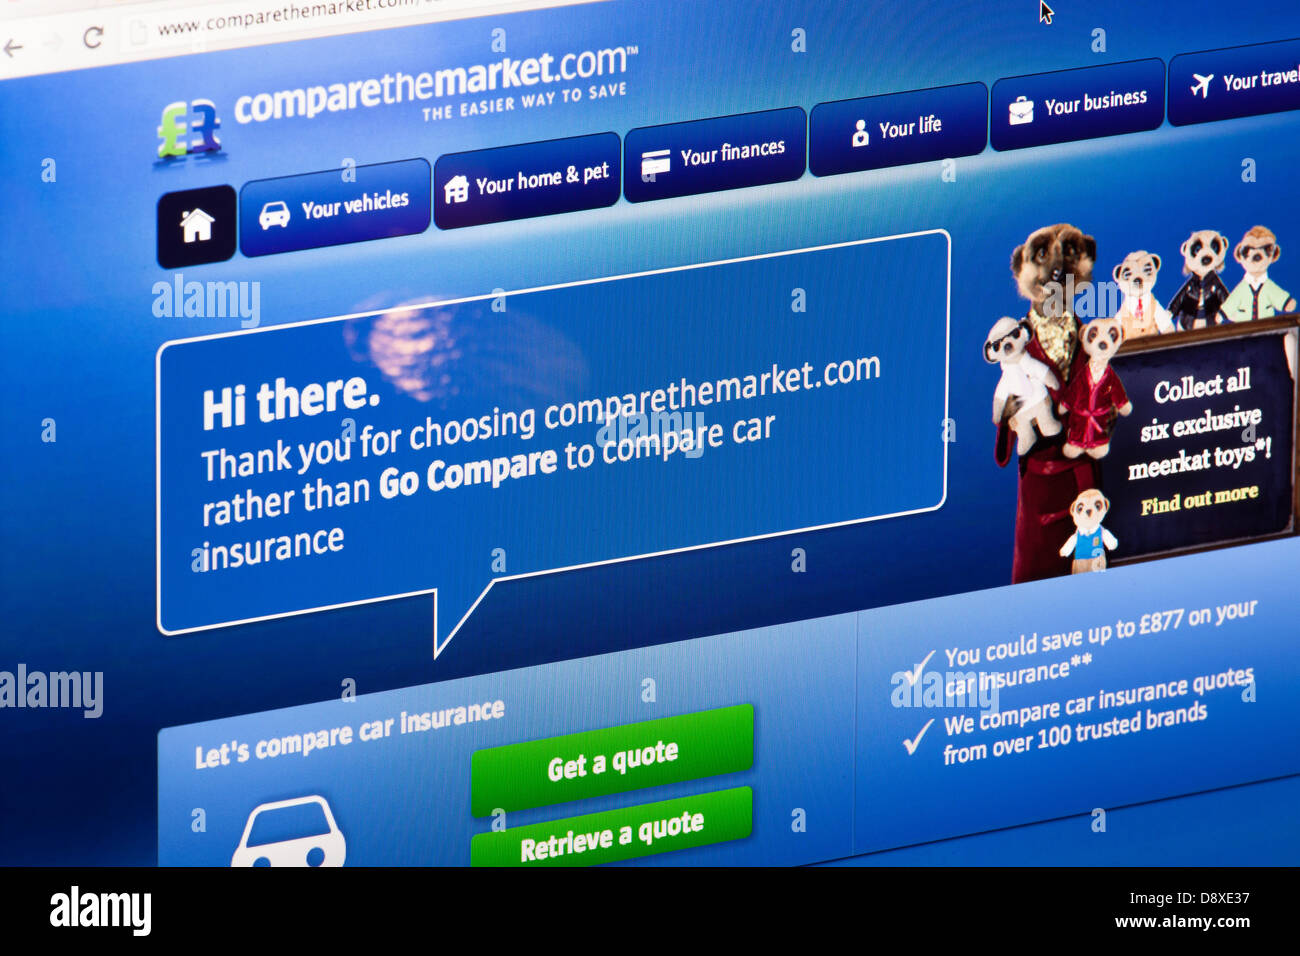 Compare the market comparison website or web page on a laptop screen or computer monitor - Stock Image